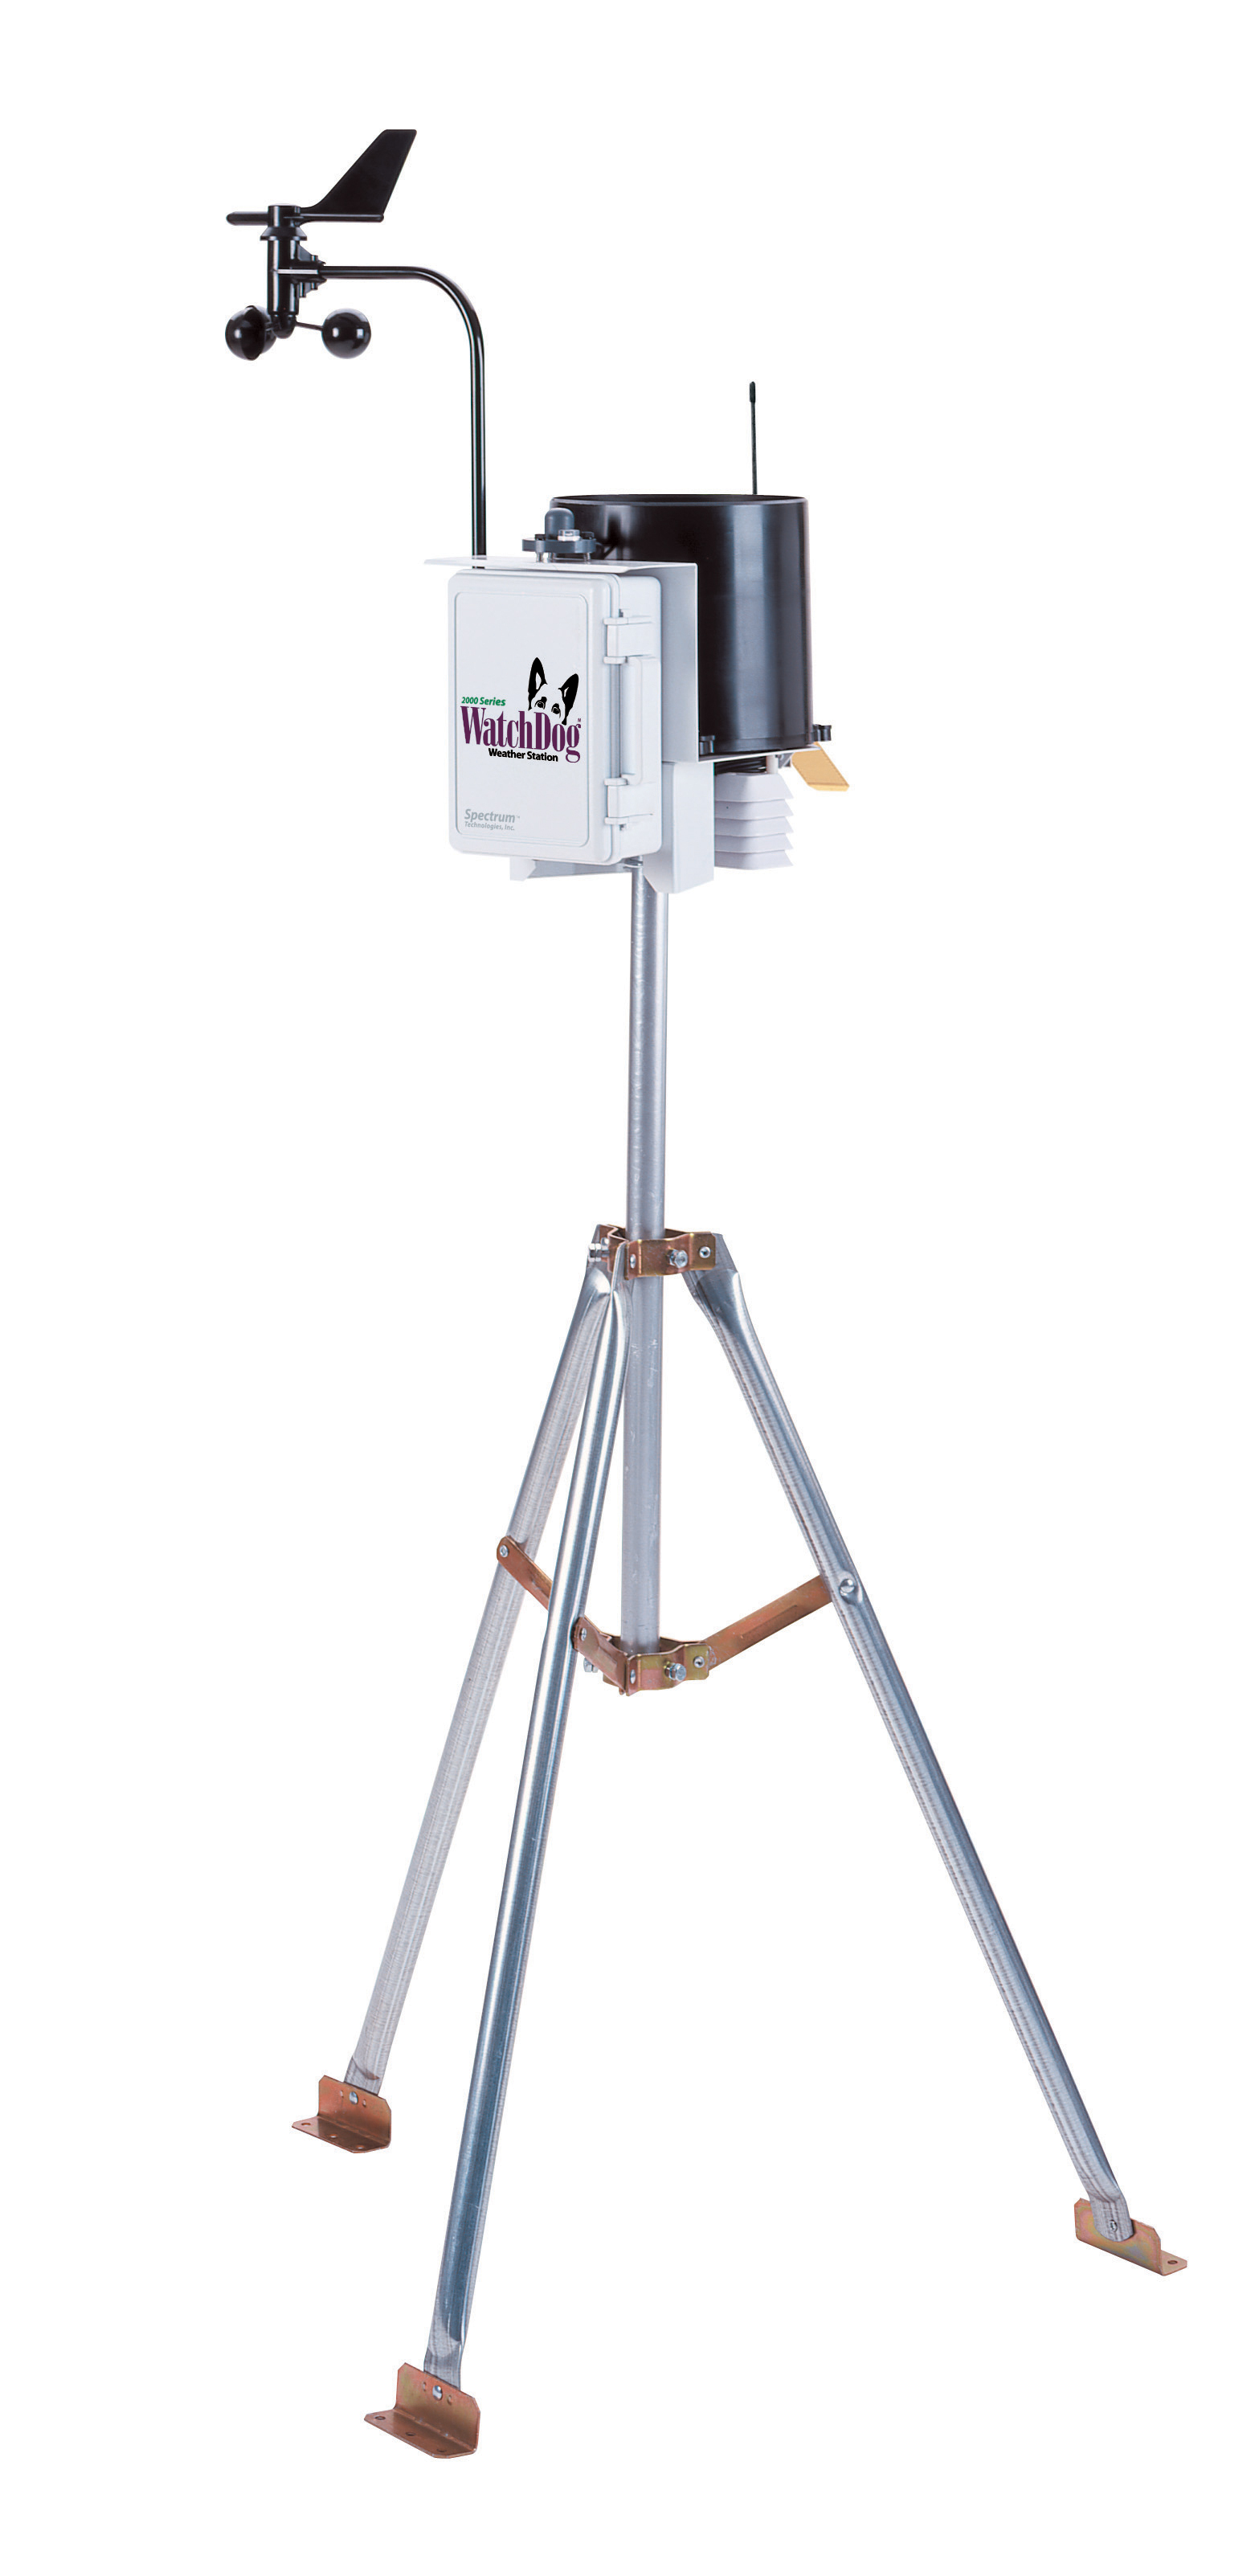 Weather Station Model Watchdog 2900ET